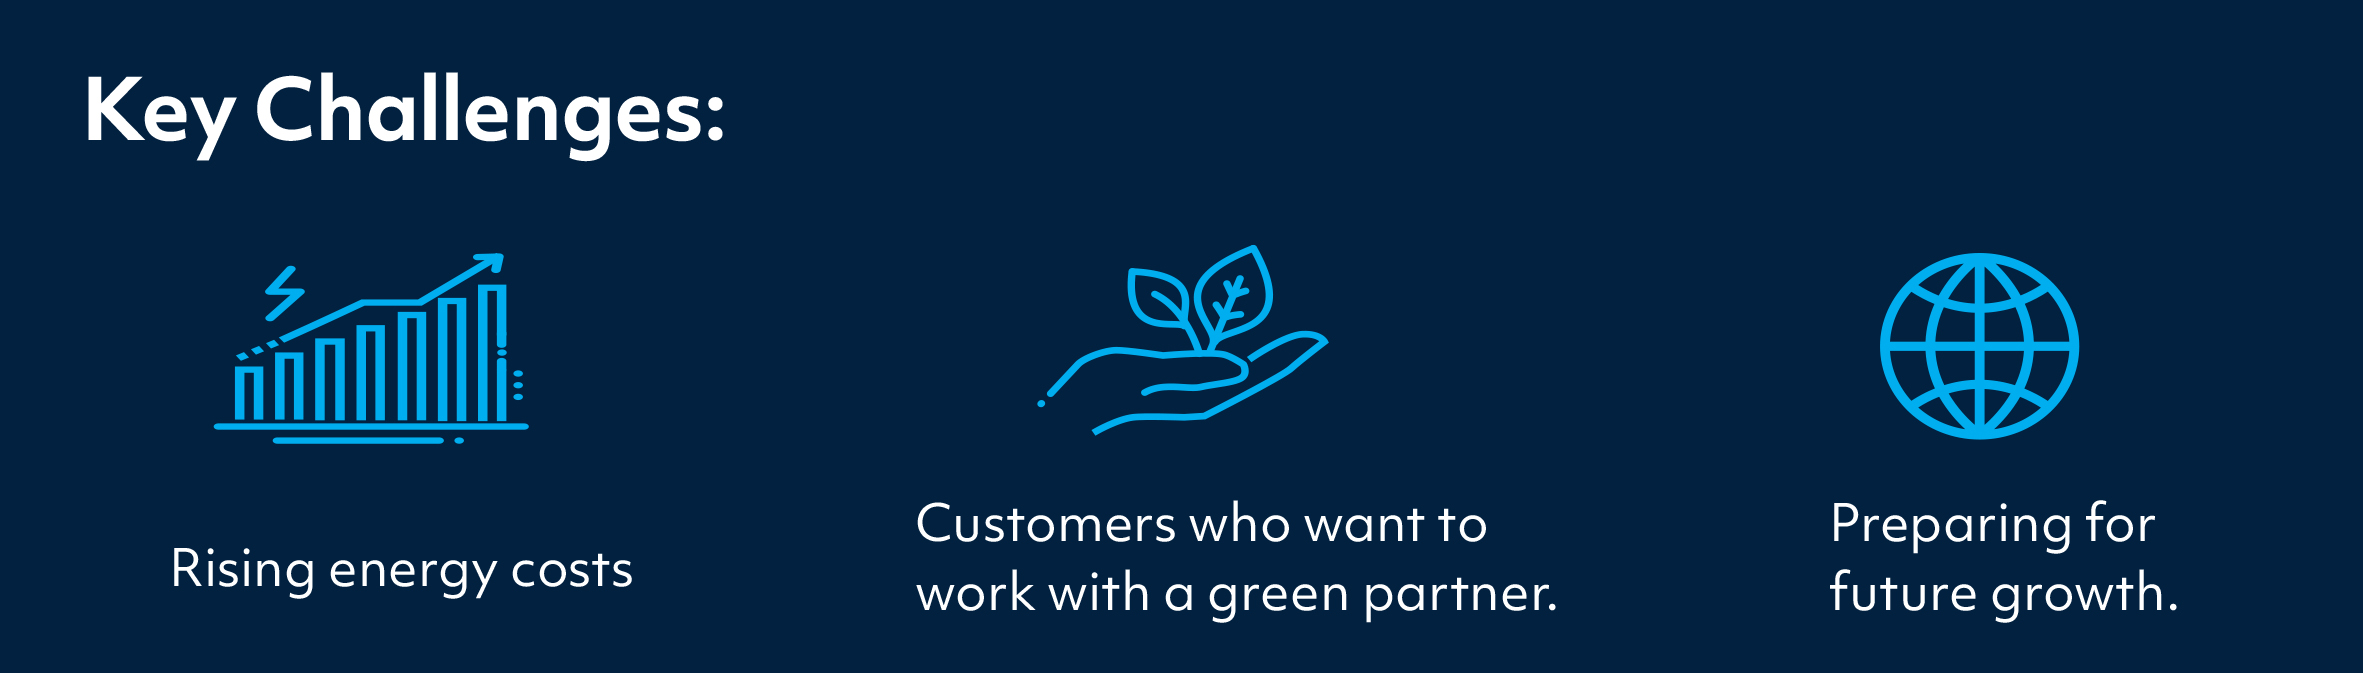 Key Challenges: 1. Rising Energy Costs, 2. Customers who want to work with a green partner, 3. Preparing for future growth